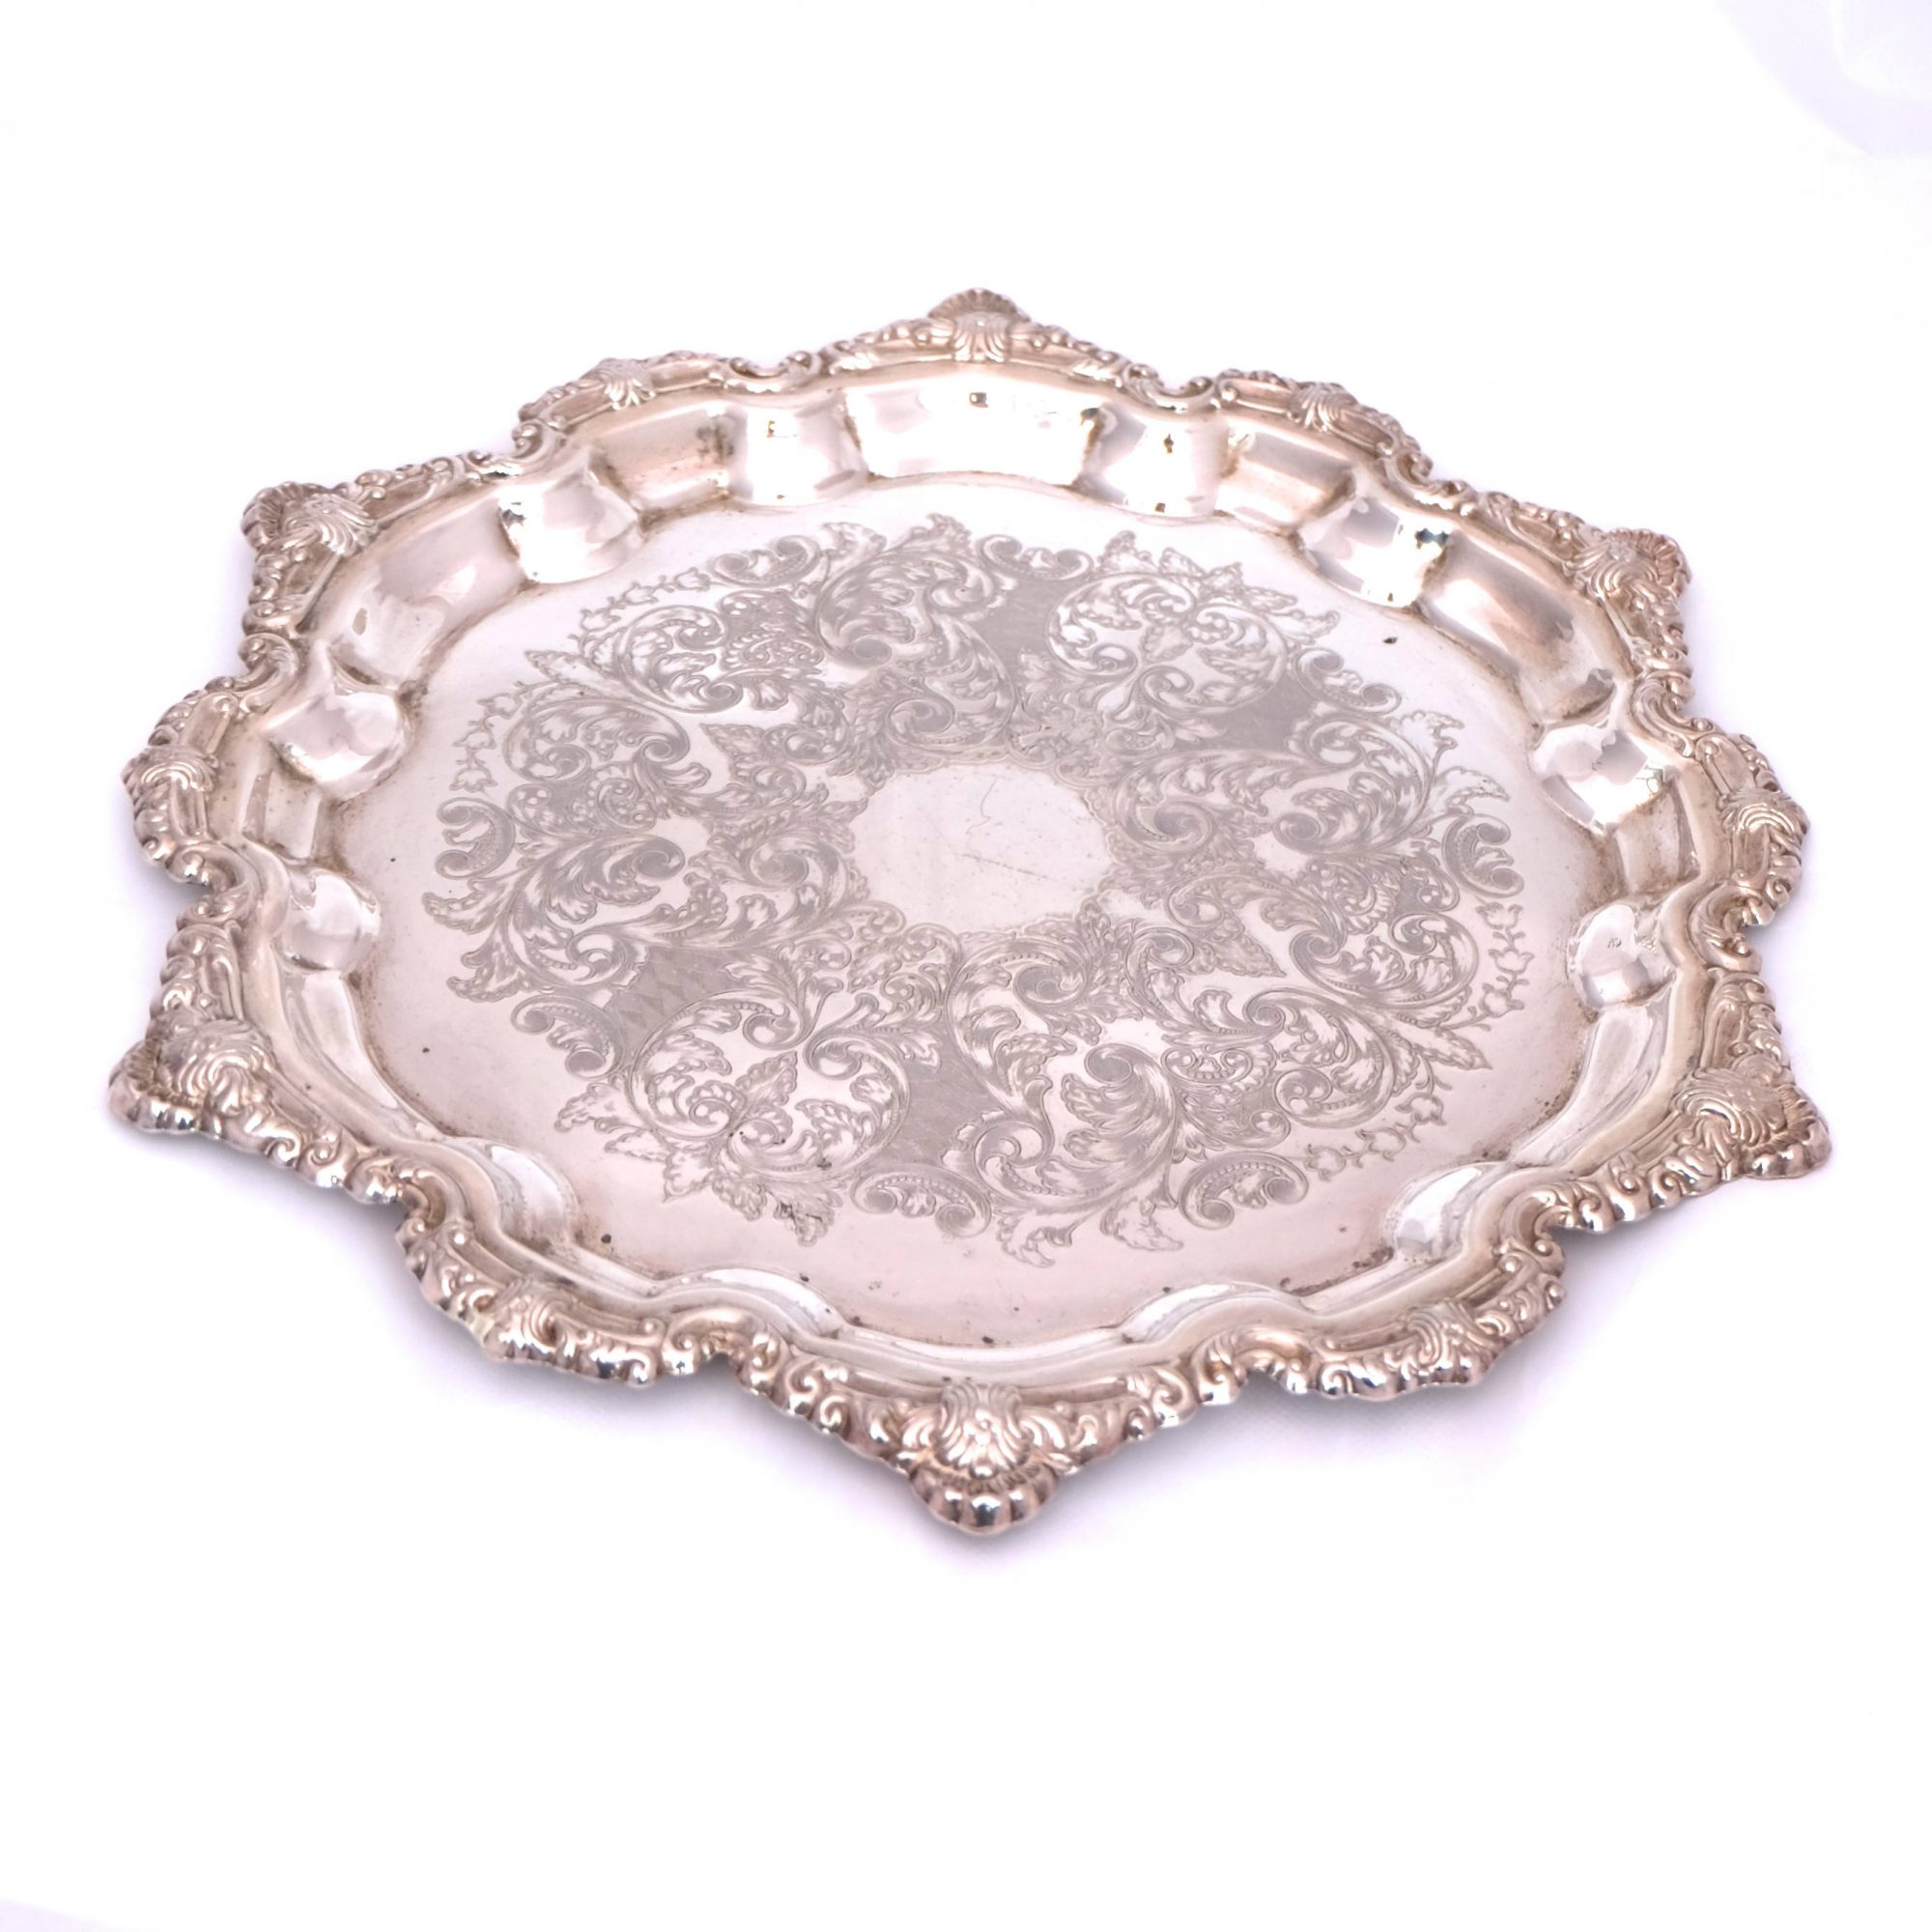 Falstaff Silver-Plated Serving Tray